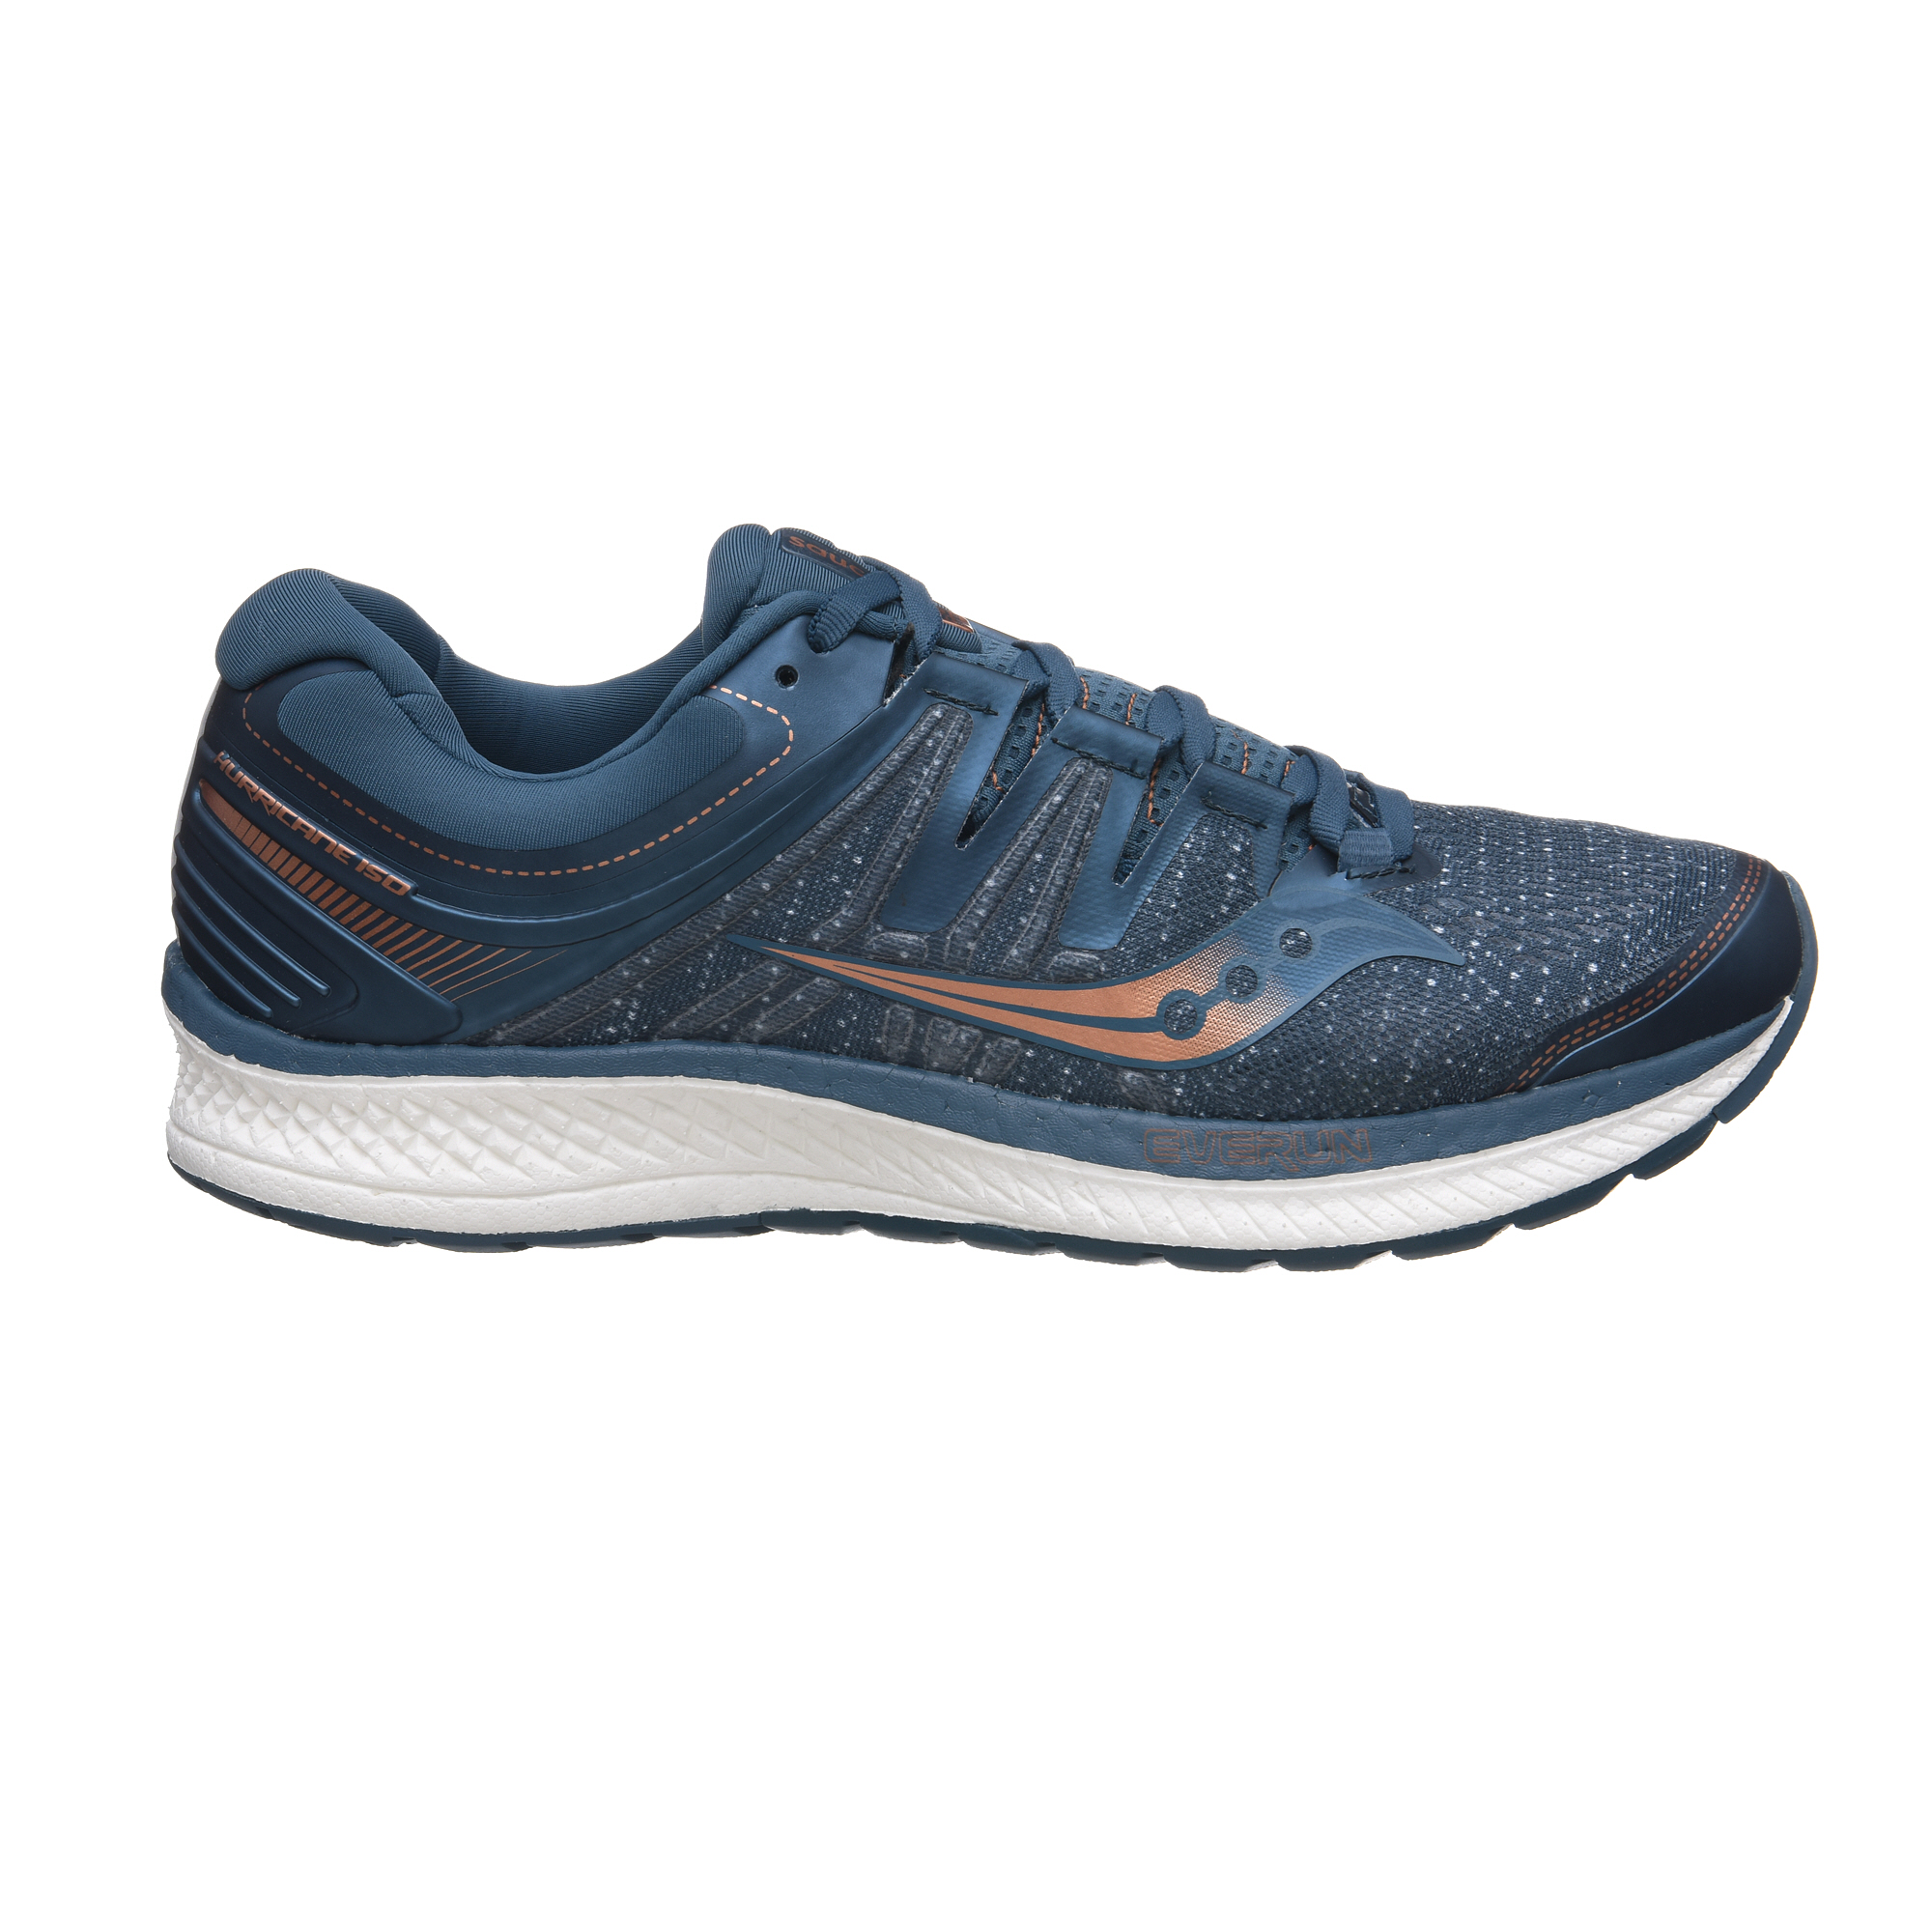 a31b9b7564 Saucony Hurricane ISO 4 Shoes